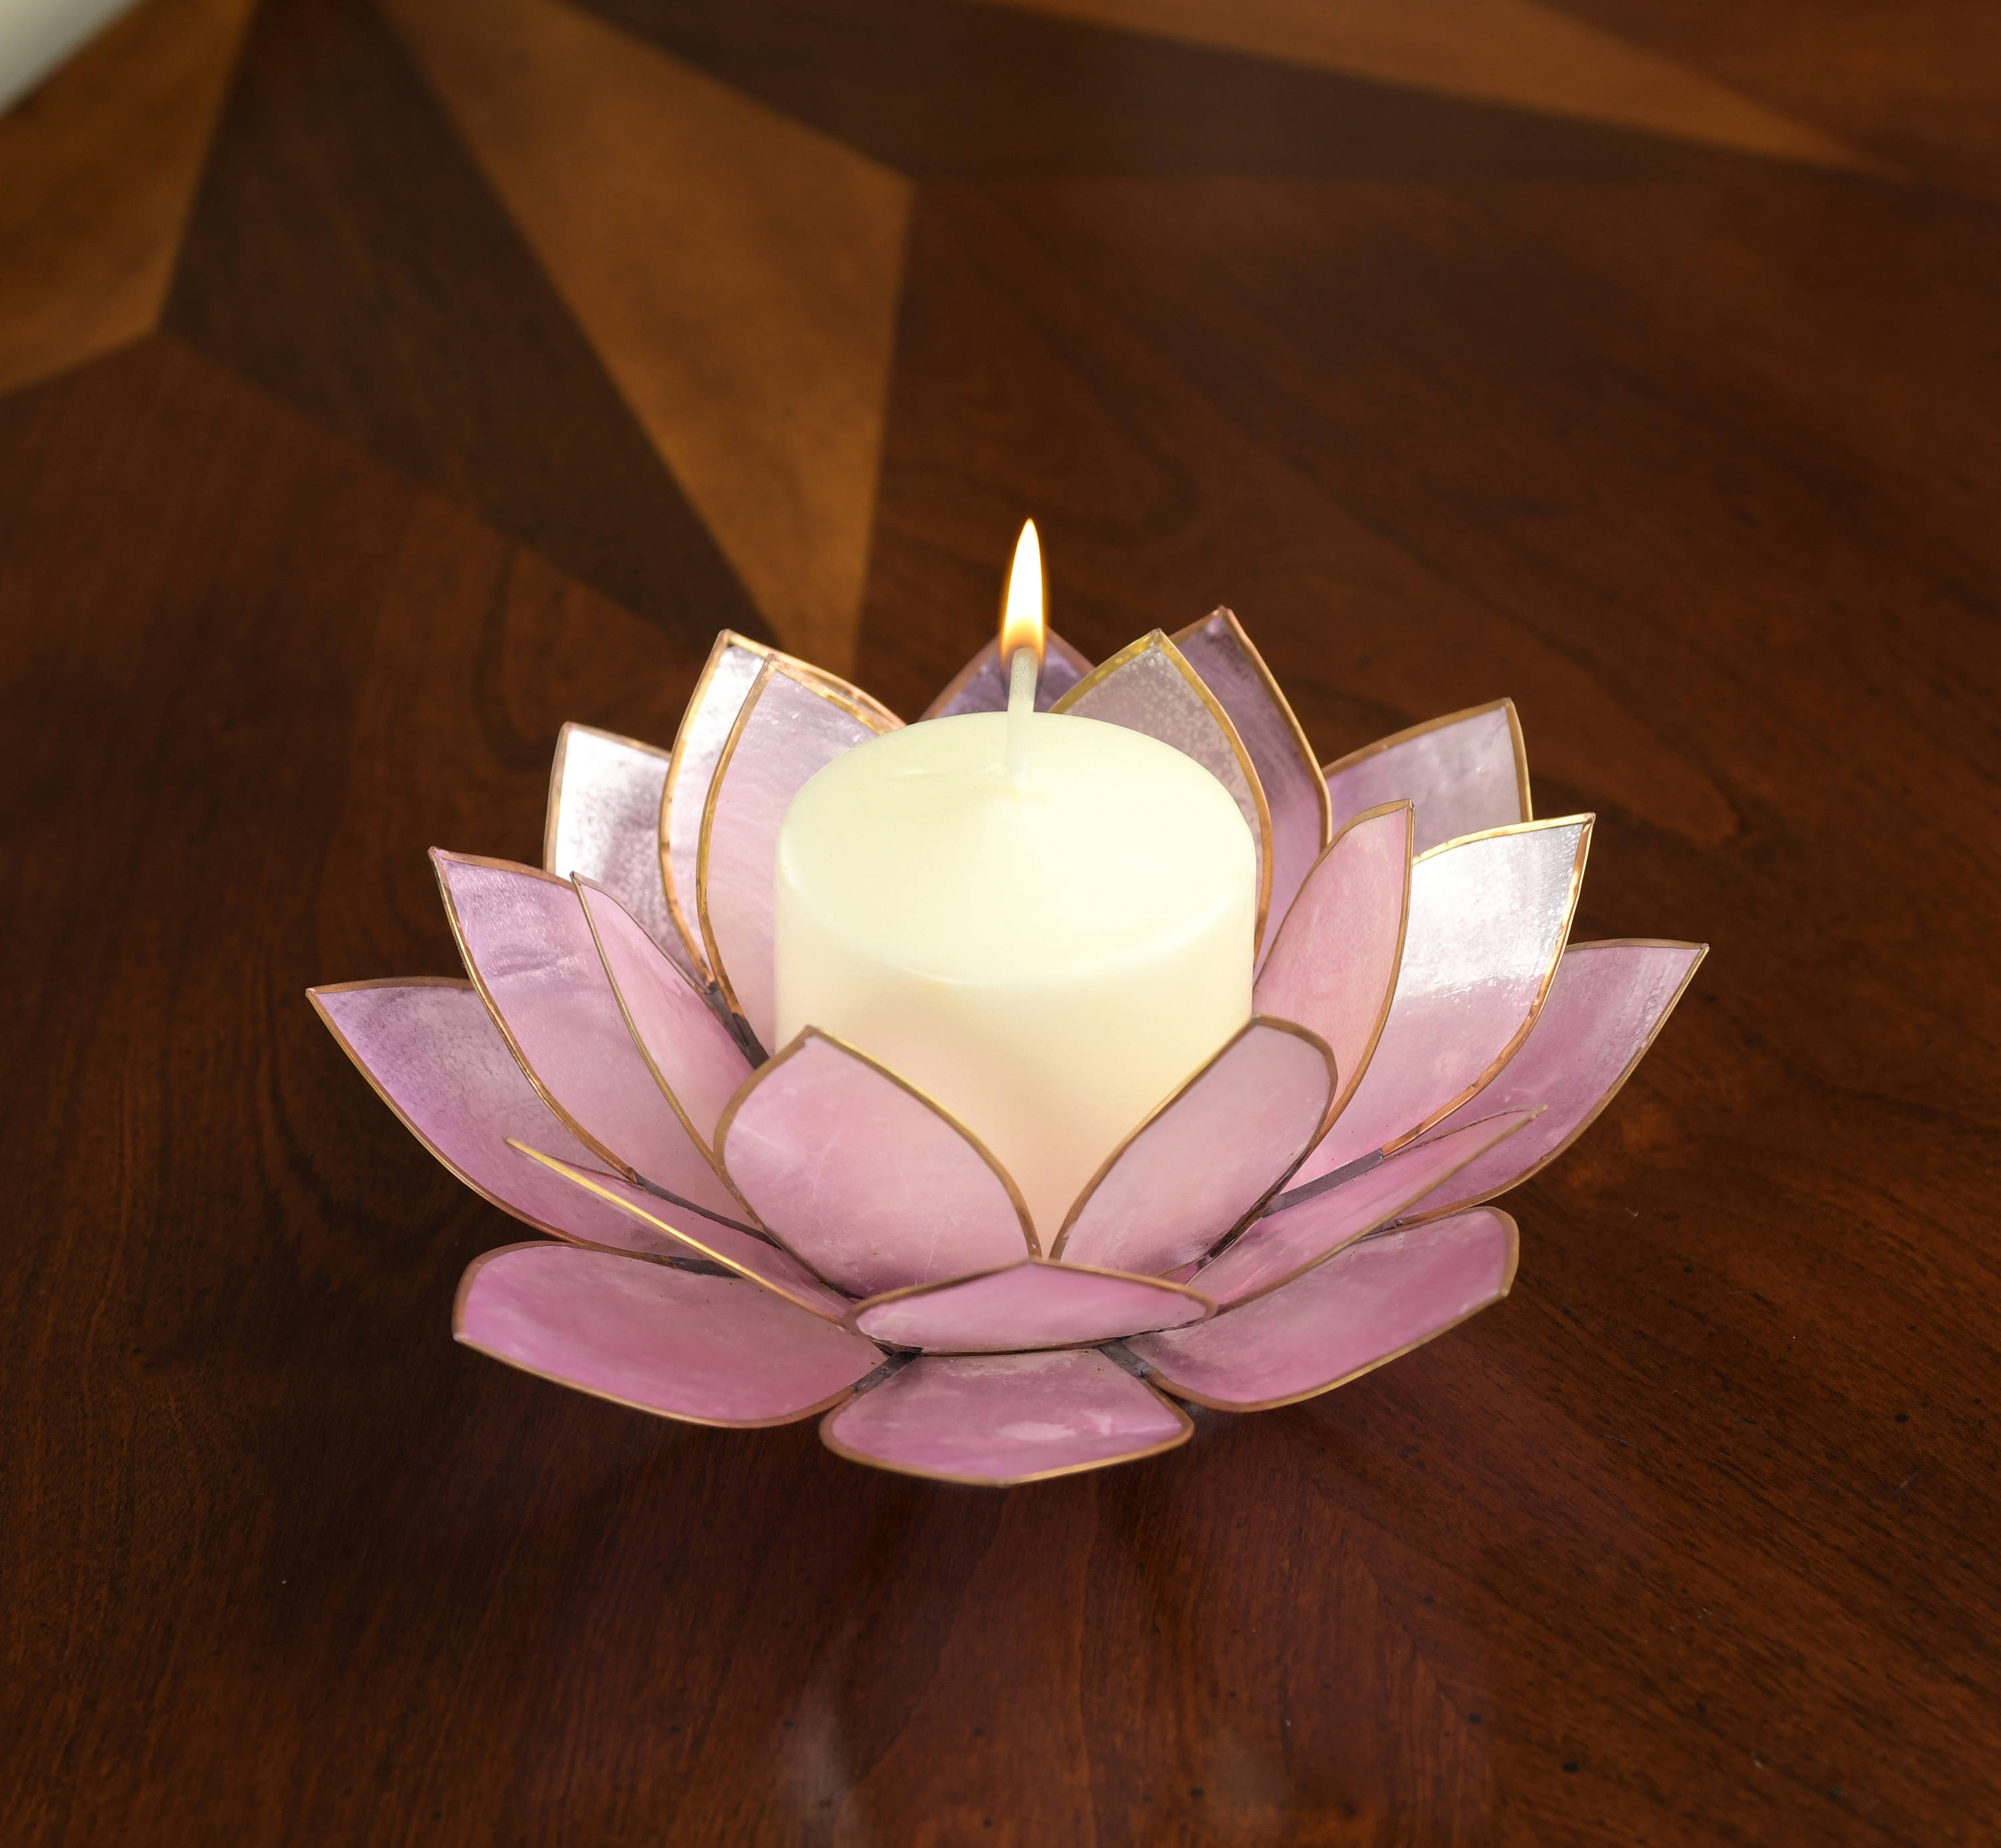 Lavender Lotus Flower Capiz Shell Candle Holder A Real Jewel